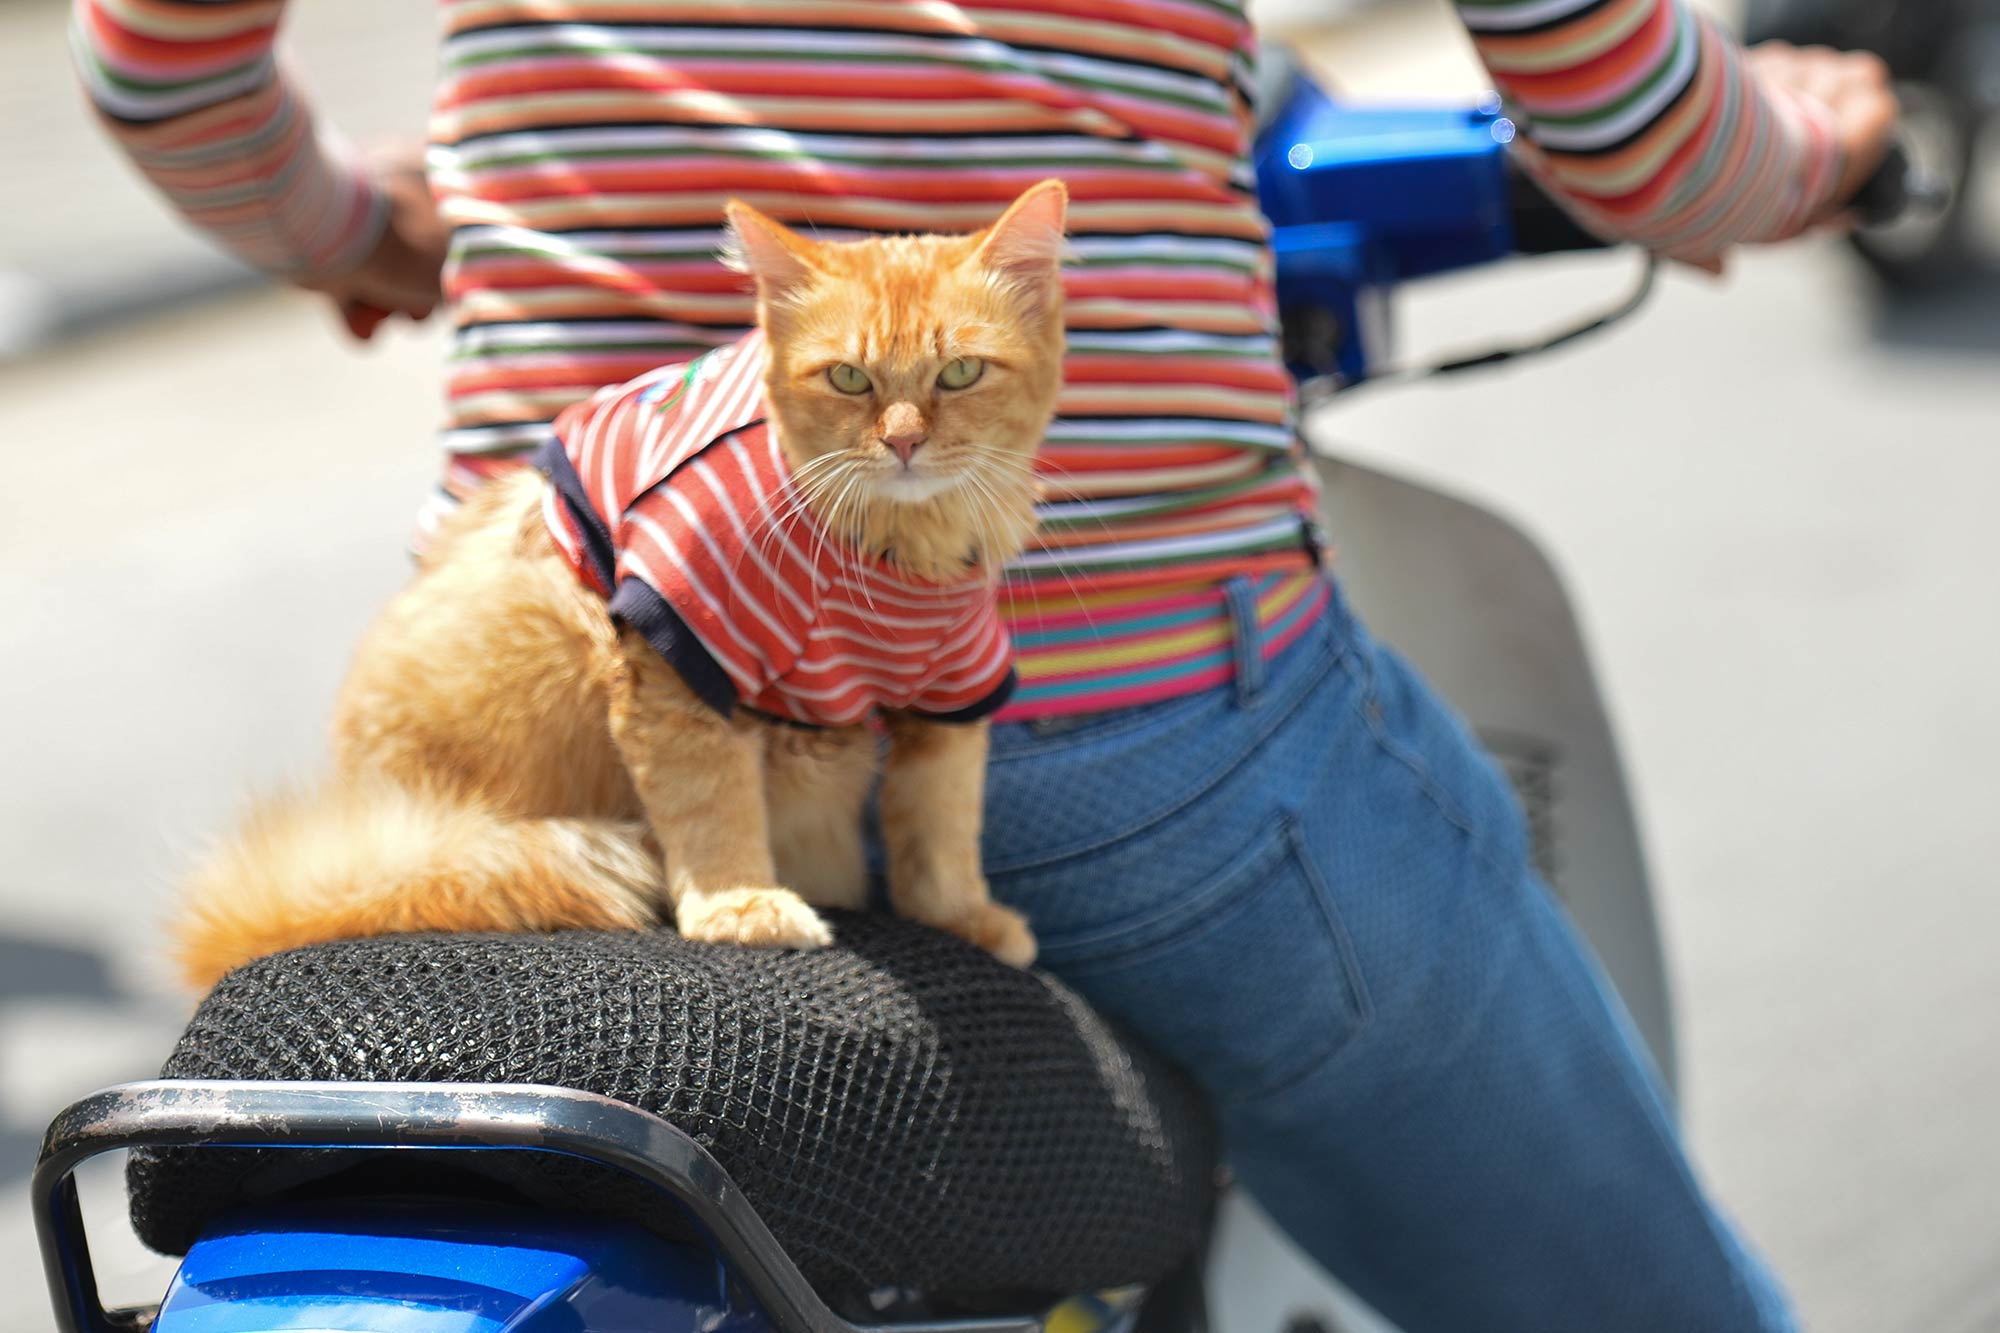 One scooter rider in Malaysia likes to dress up his cat in matching t-shirts.